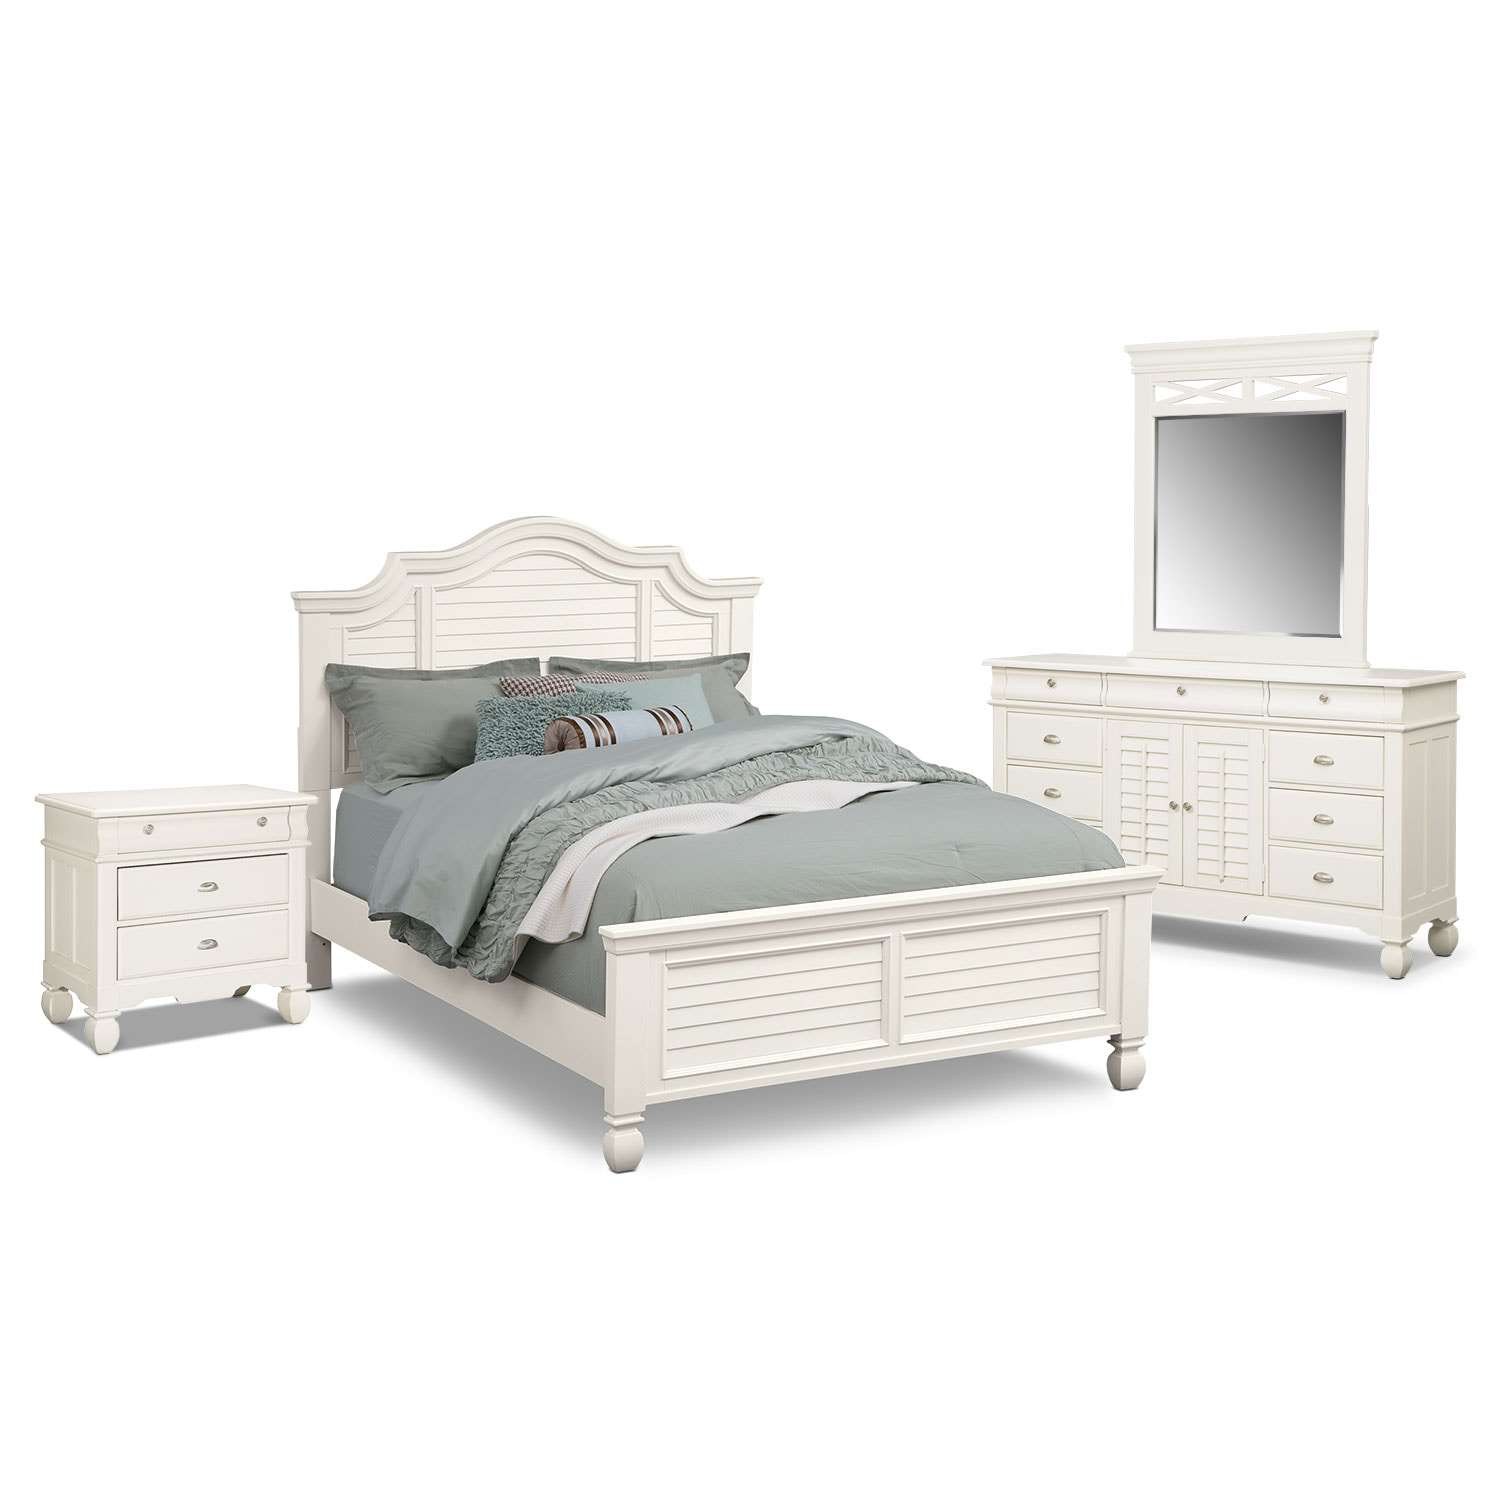 Plantation Cove 6-Piece Queen Panel Bedroom Set - White